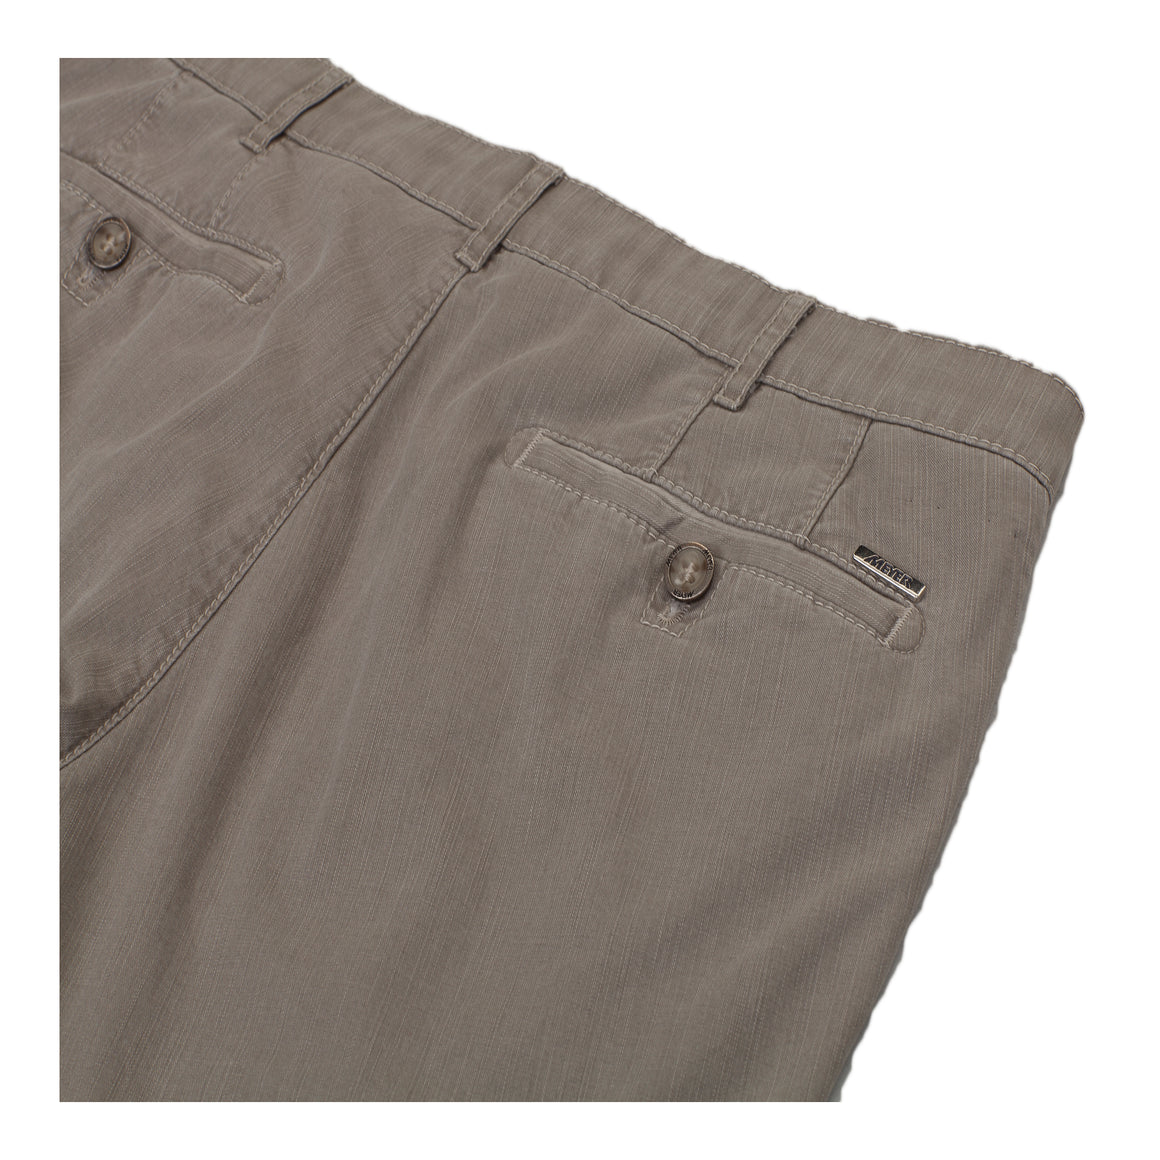 Roma Flamme Chinos for Men in Stone